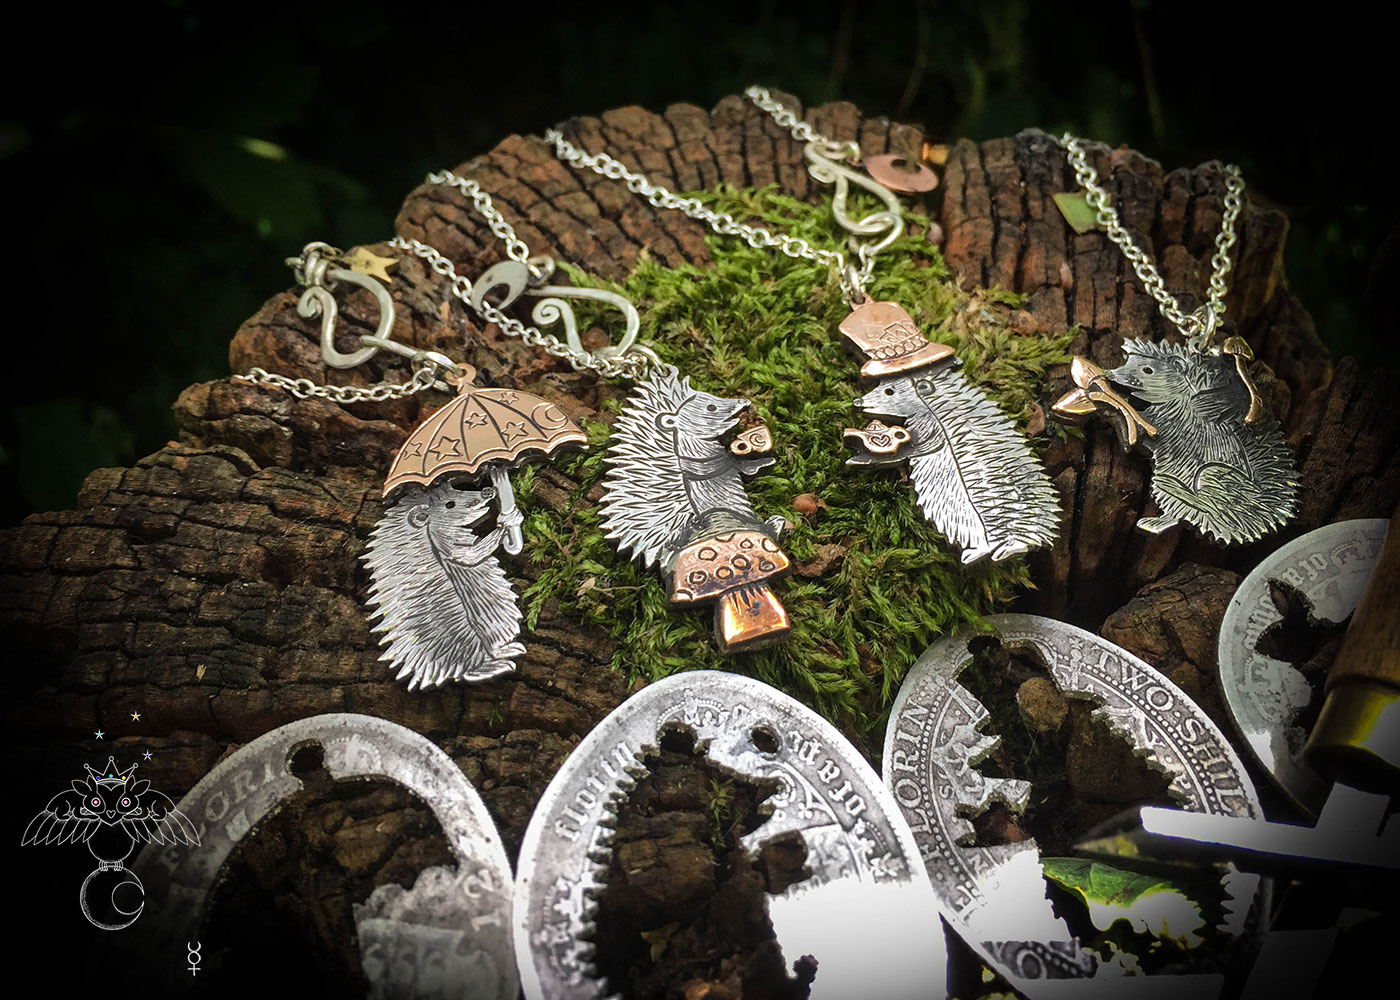 a hedgehog gathering, necklaces made from old silver coins